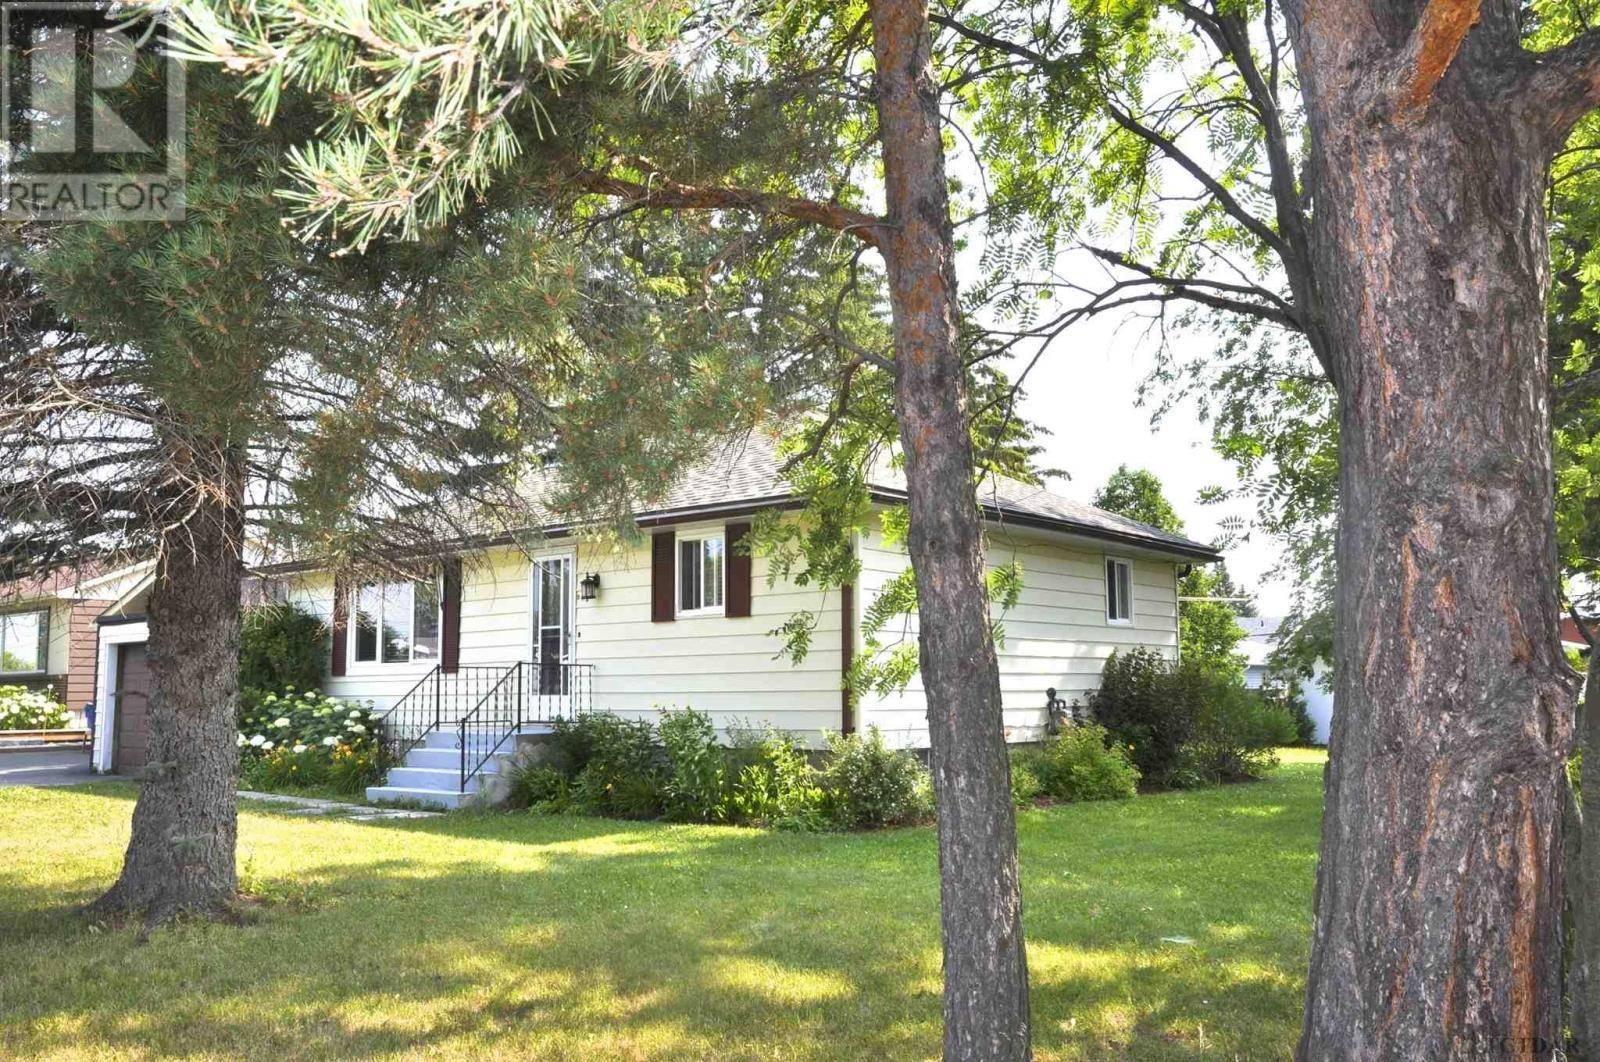 House for sale at 225 Robert St Temiskaming Shores Ontario - MLS: TM200058